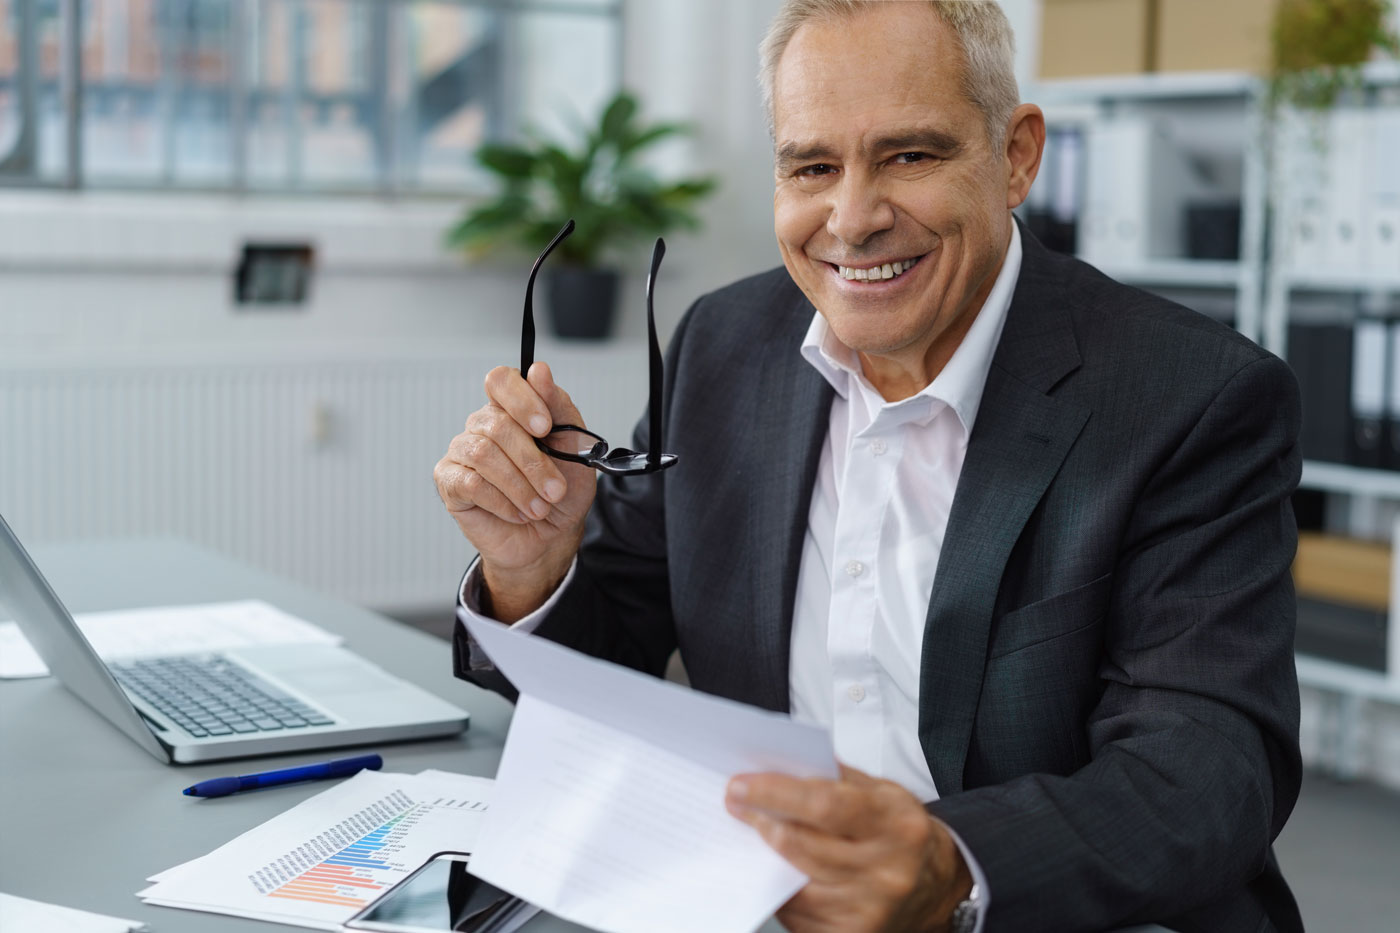 Men in office smiling with glasses in hands